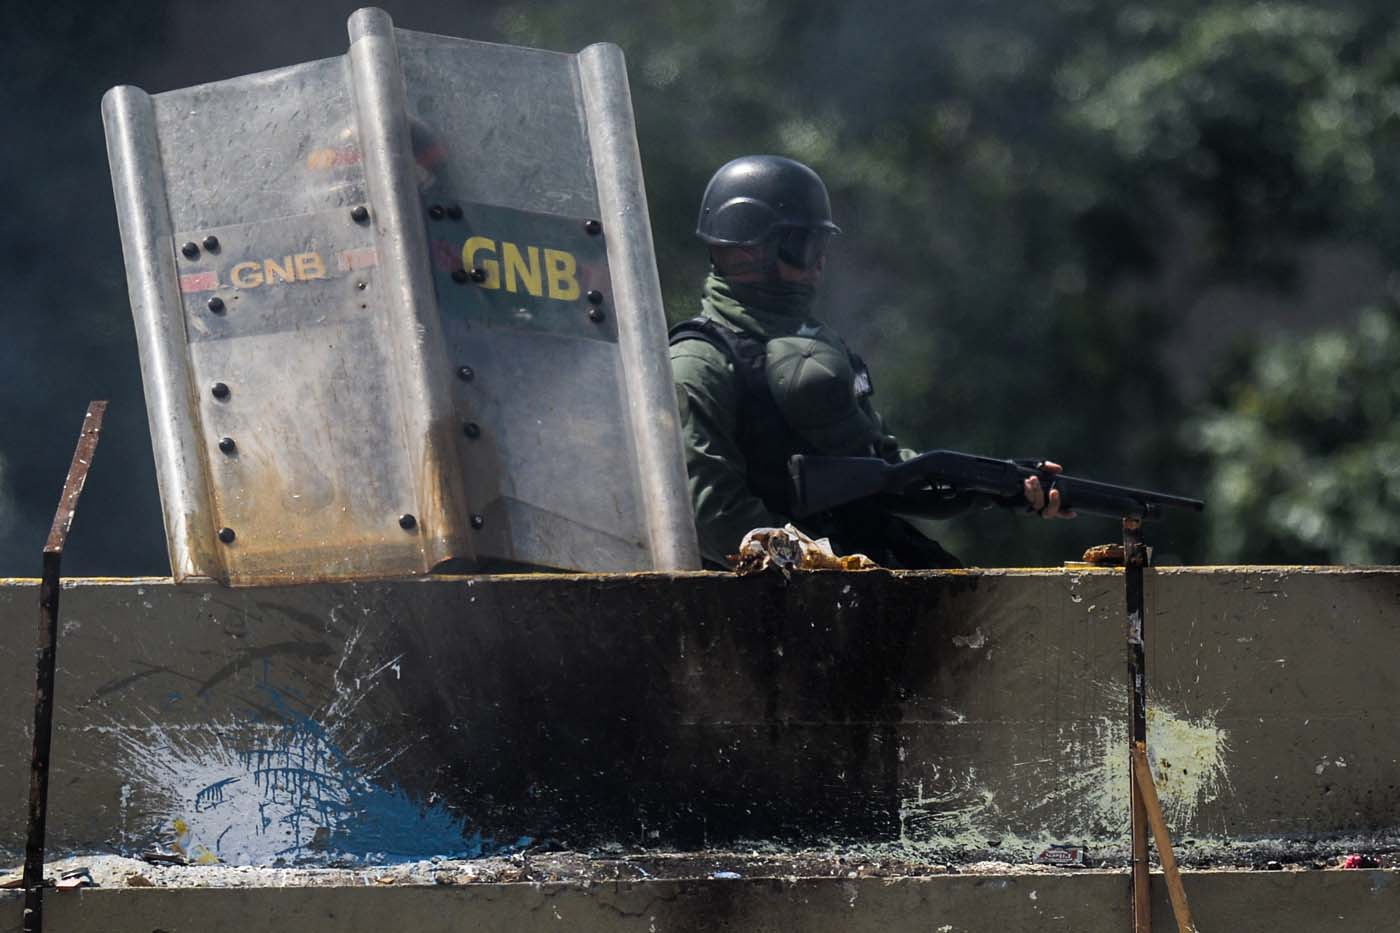 Riot police officers confront opposition activists during a demonstration against Venezuelan President Nicolas Maduro in Caracas, on May 26, 2017. Riot police in Venezuela fired tear gas and water cannon to stop anti-government protesters from marching on a key military installation Friday during the latest violence in nearly two months of unrest. / AFP PHOTO / Federico PARRA